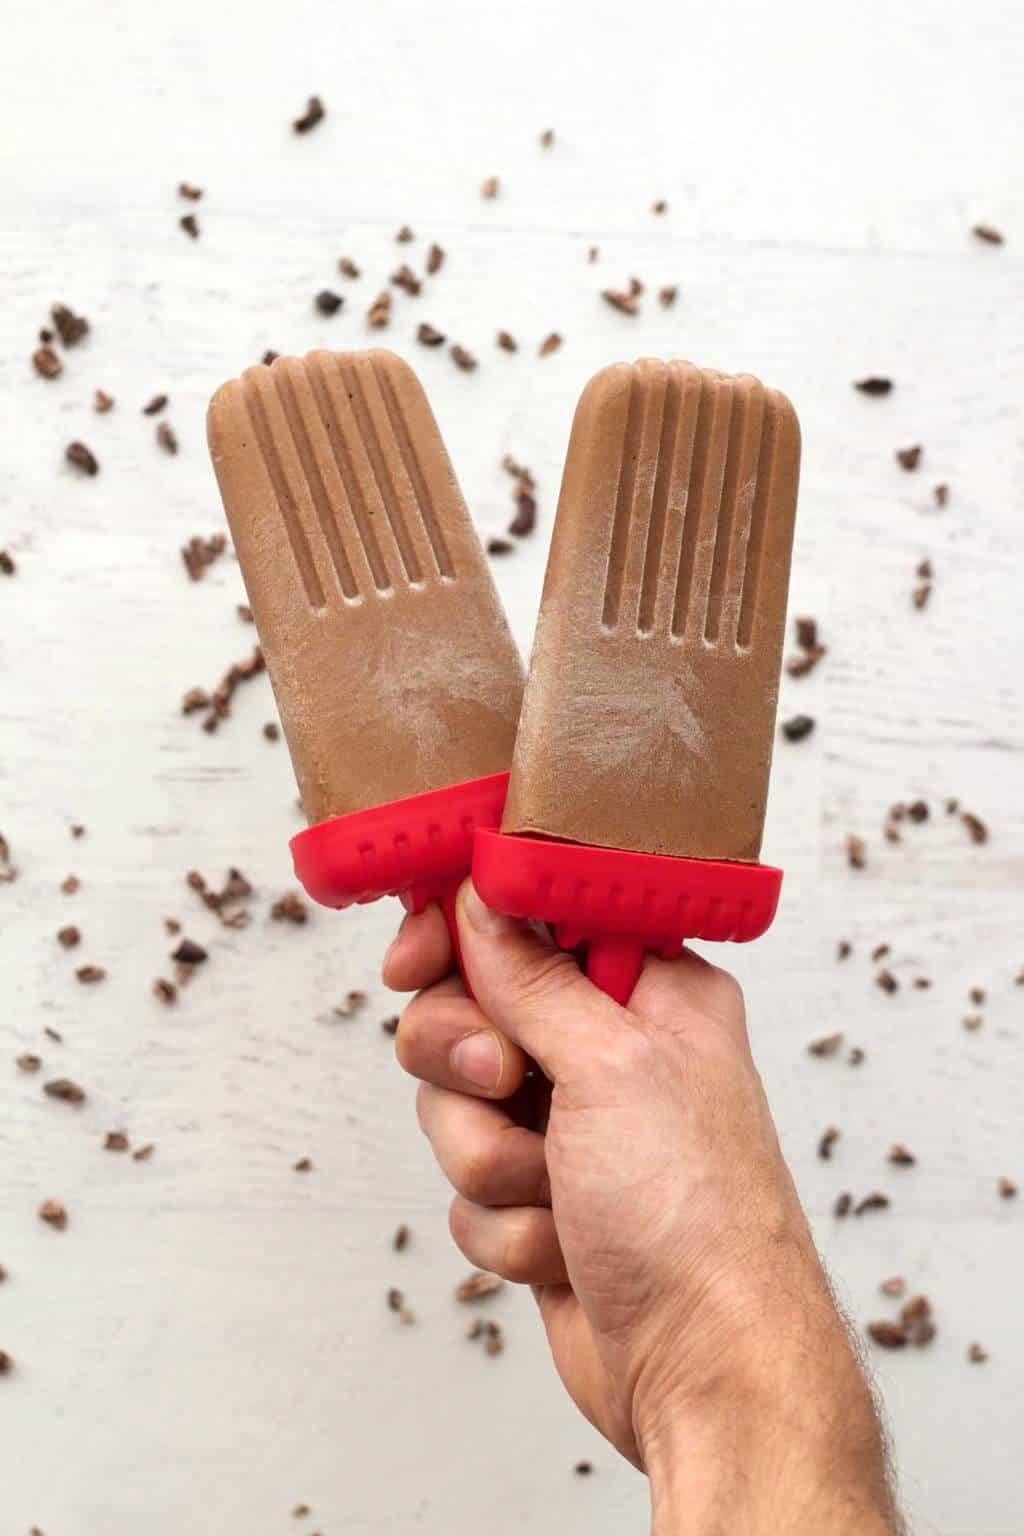 Vegan Dark Chocolate Popsicles #vegan #lovingitvegan #chocolatepopsicles #dessert #snack #glutenfree #dairyfree